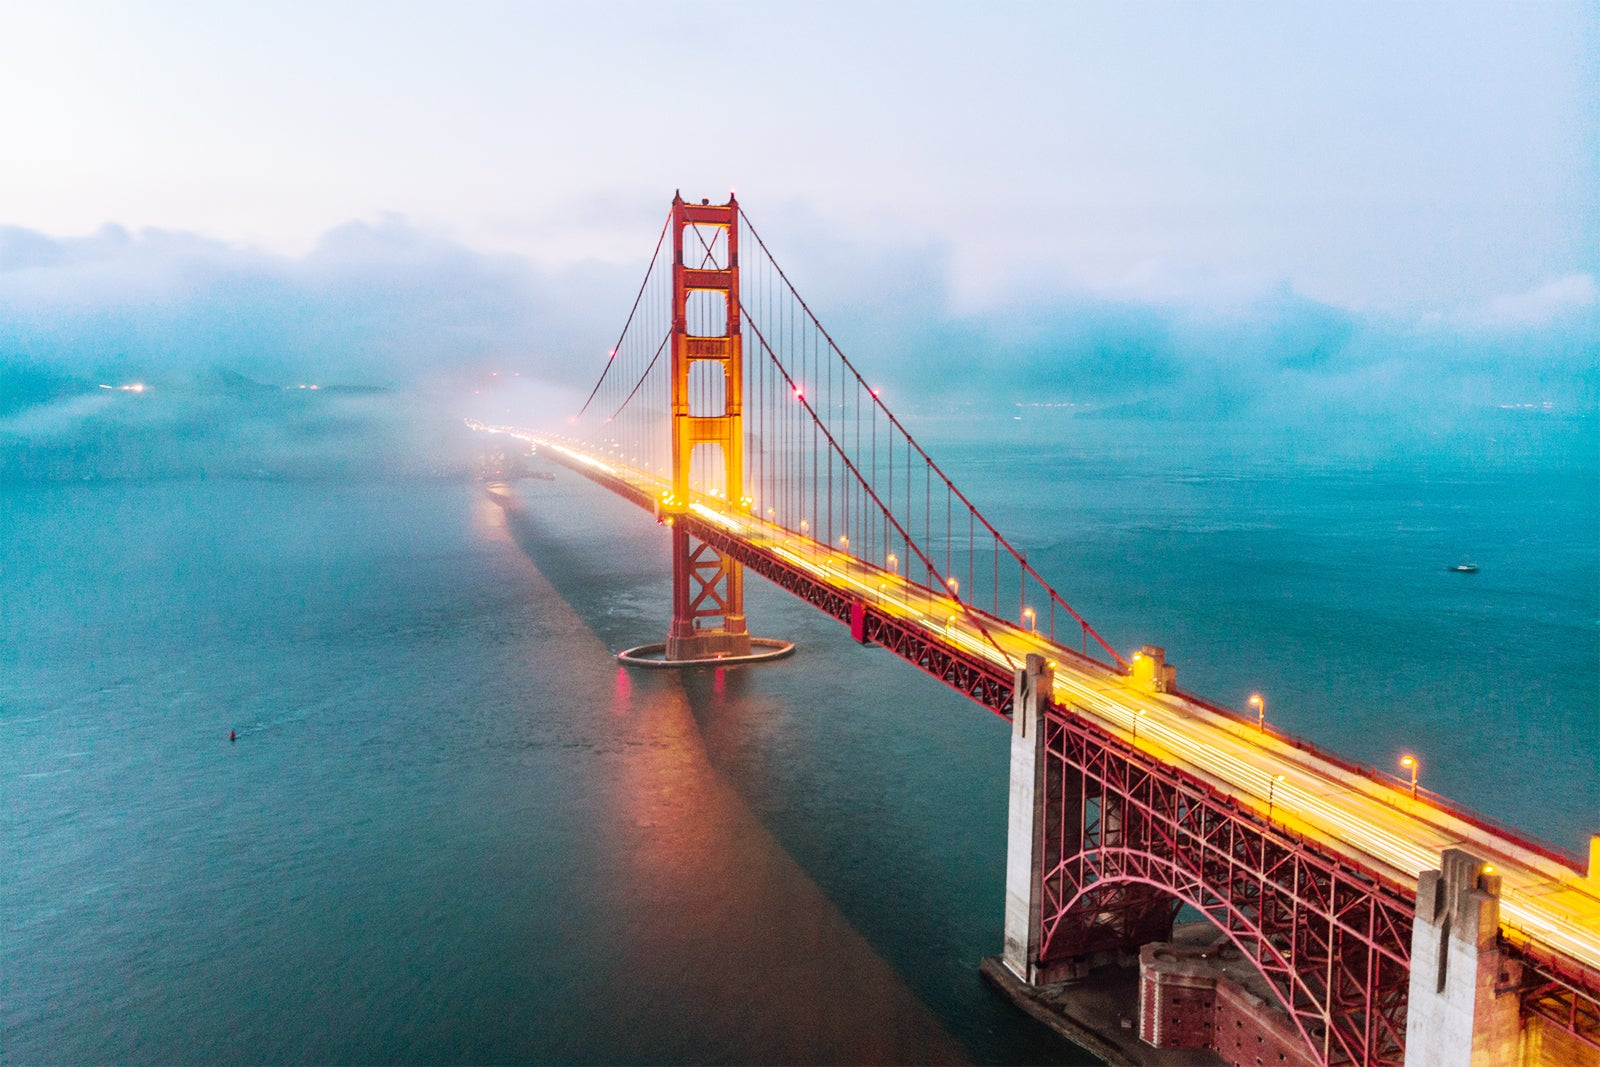 Deal Alert: Fly to San Francisco for under $100 one-way